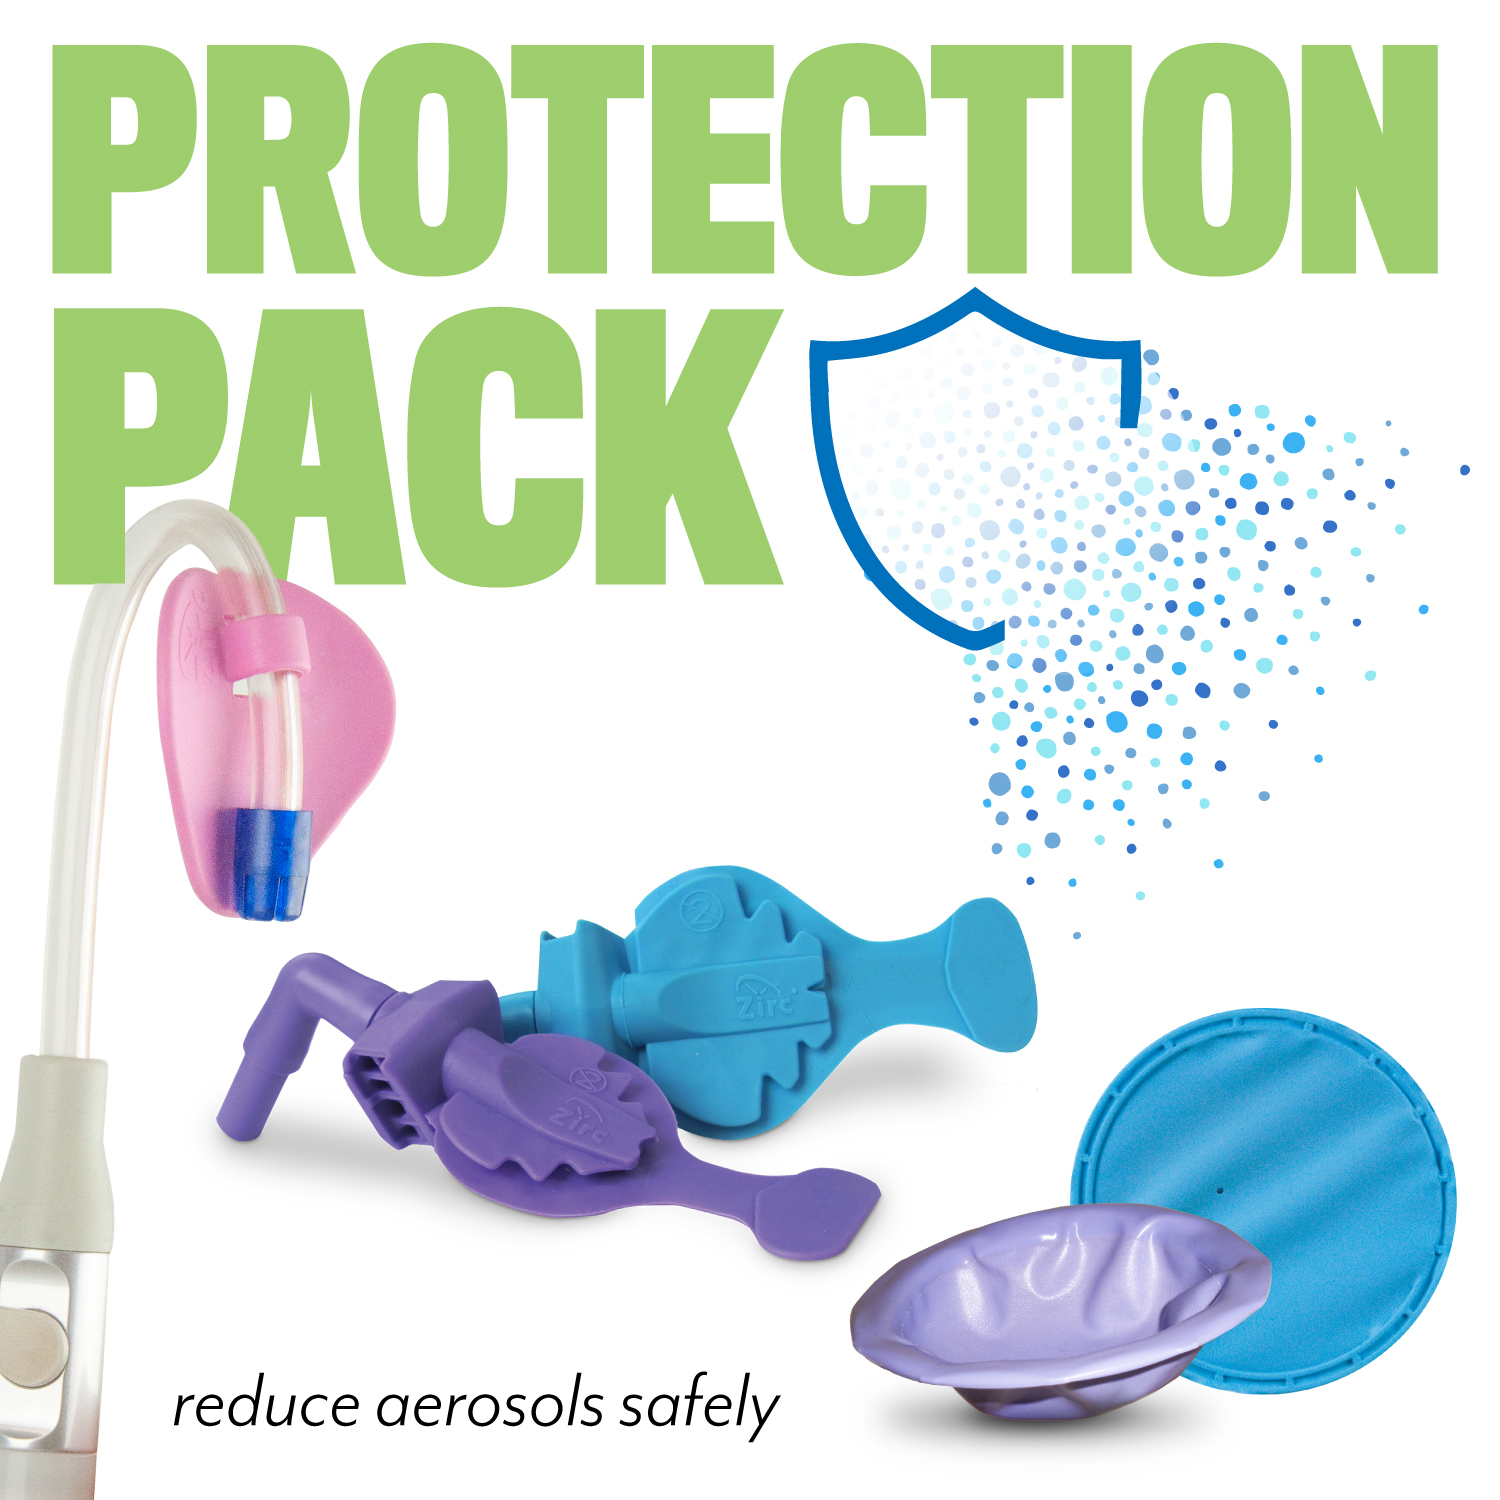 Protection Pack for Aerosol Reduction